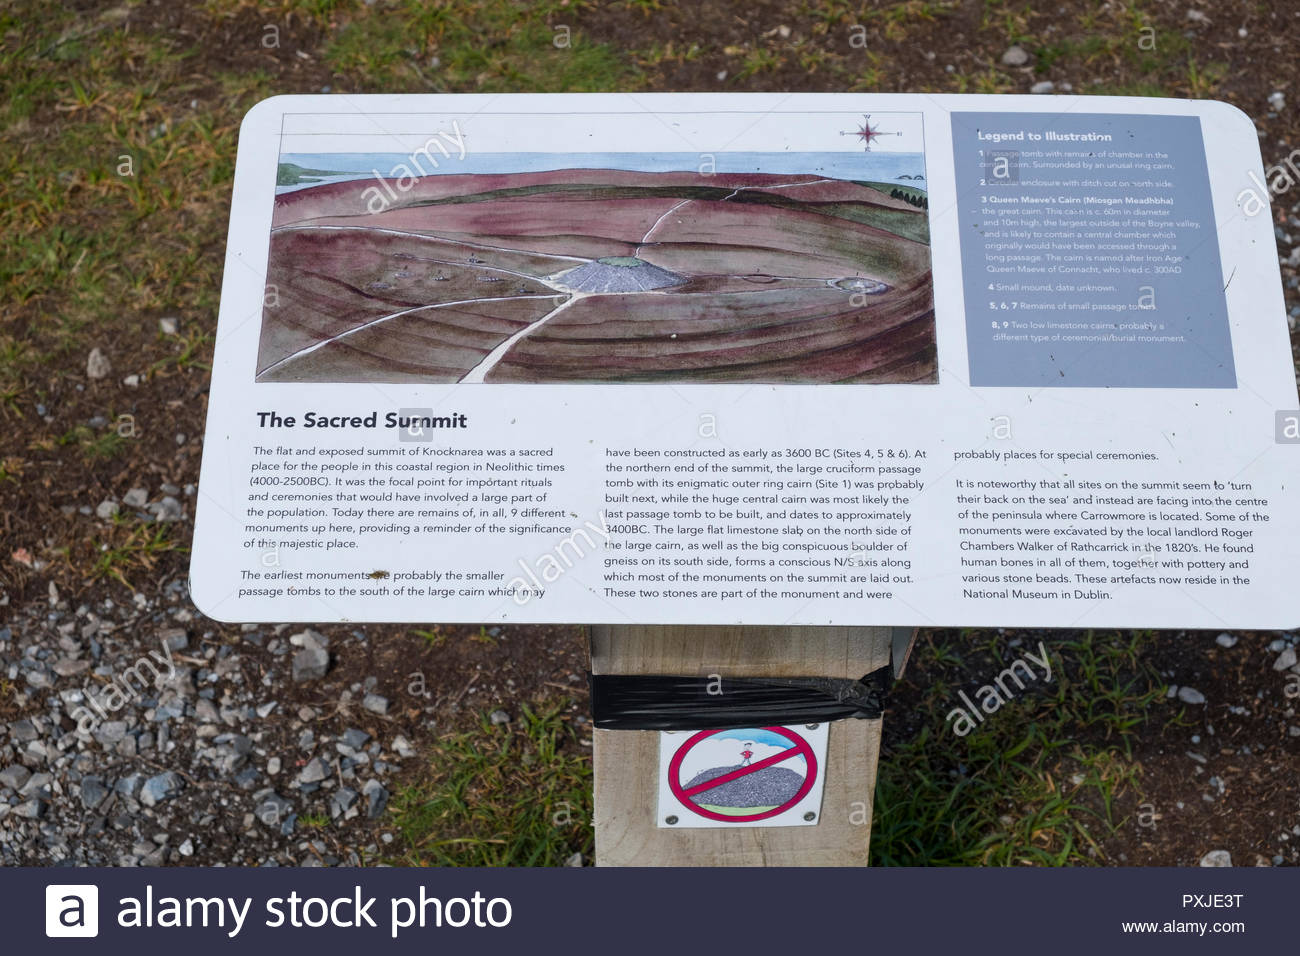 Graphic sign with information about Queen Maeve's Grave Cairn on the summit of Knocknarea, the Neolithic passage tomb cairn measures some 180 feet acr Stock Photo